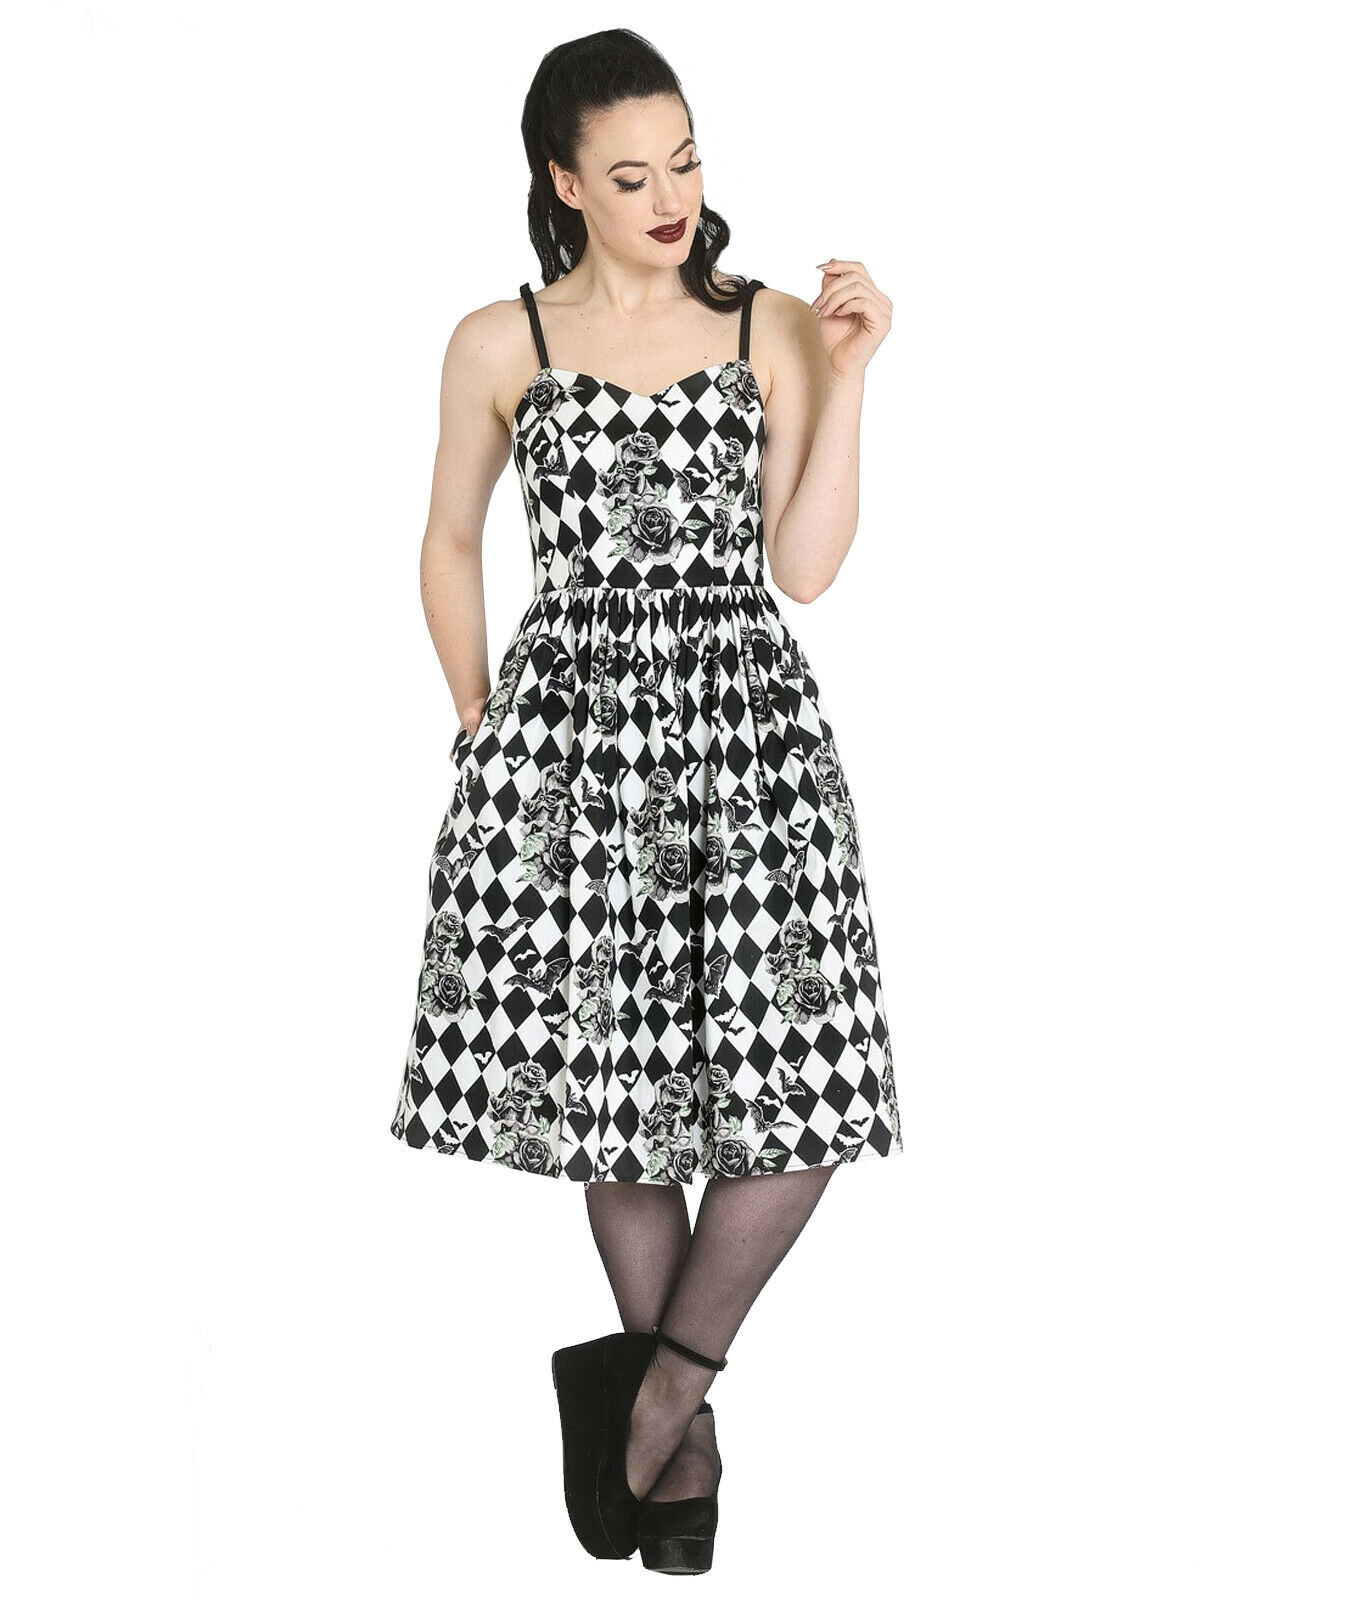 Hell-Bunny-Black-Harlequin-Pinup-50s-Gothic-Dress-HAUNTLEY-Bats-Roses-All-Sizes thumbnail 3